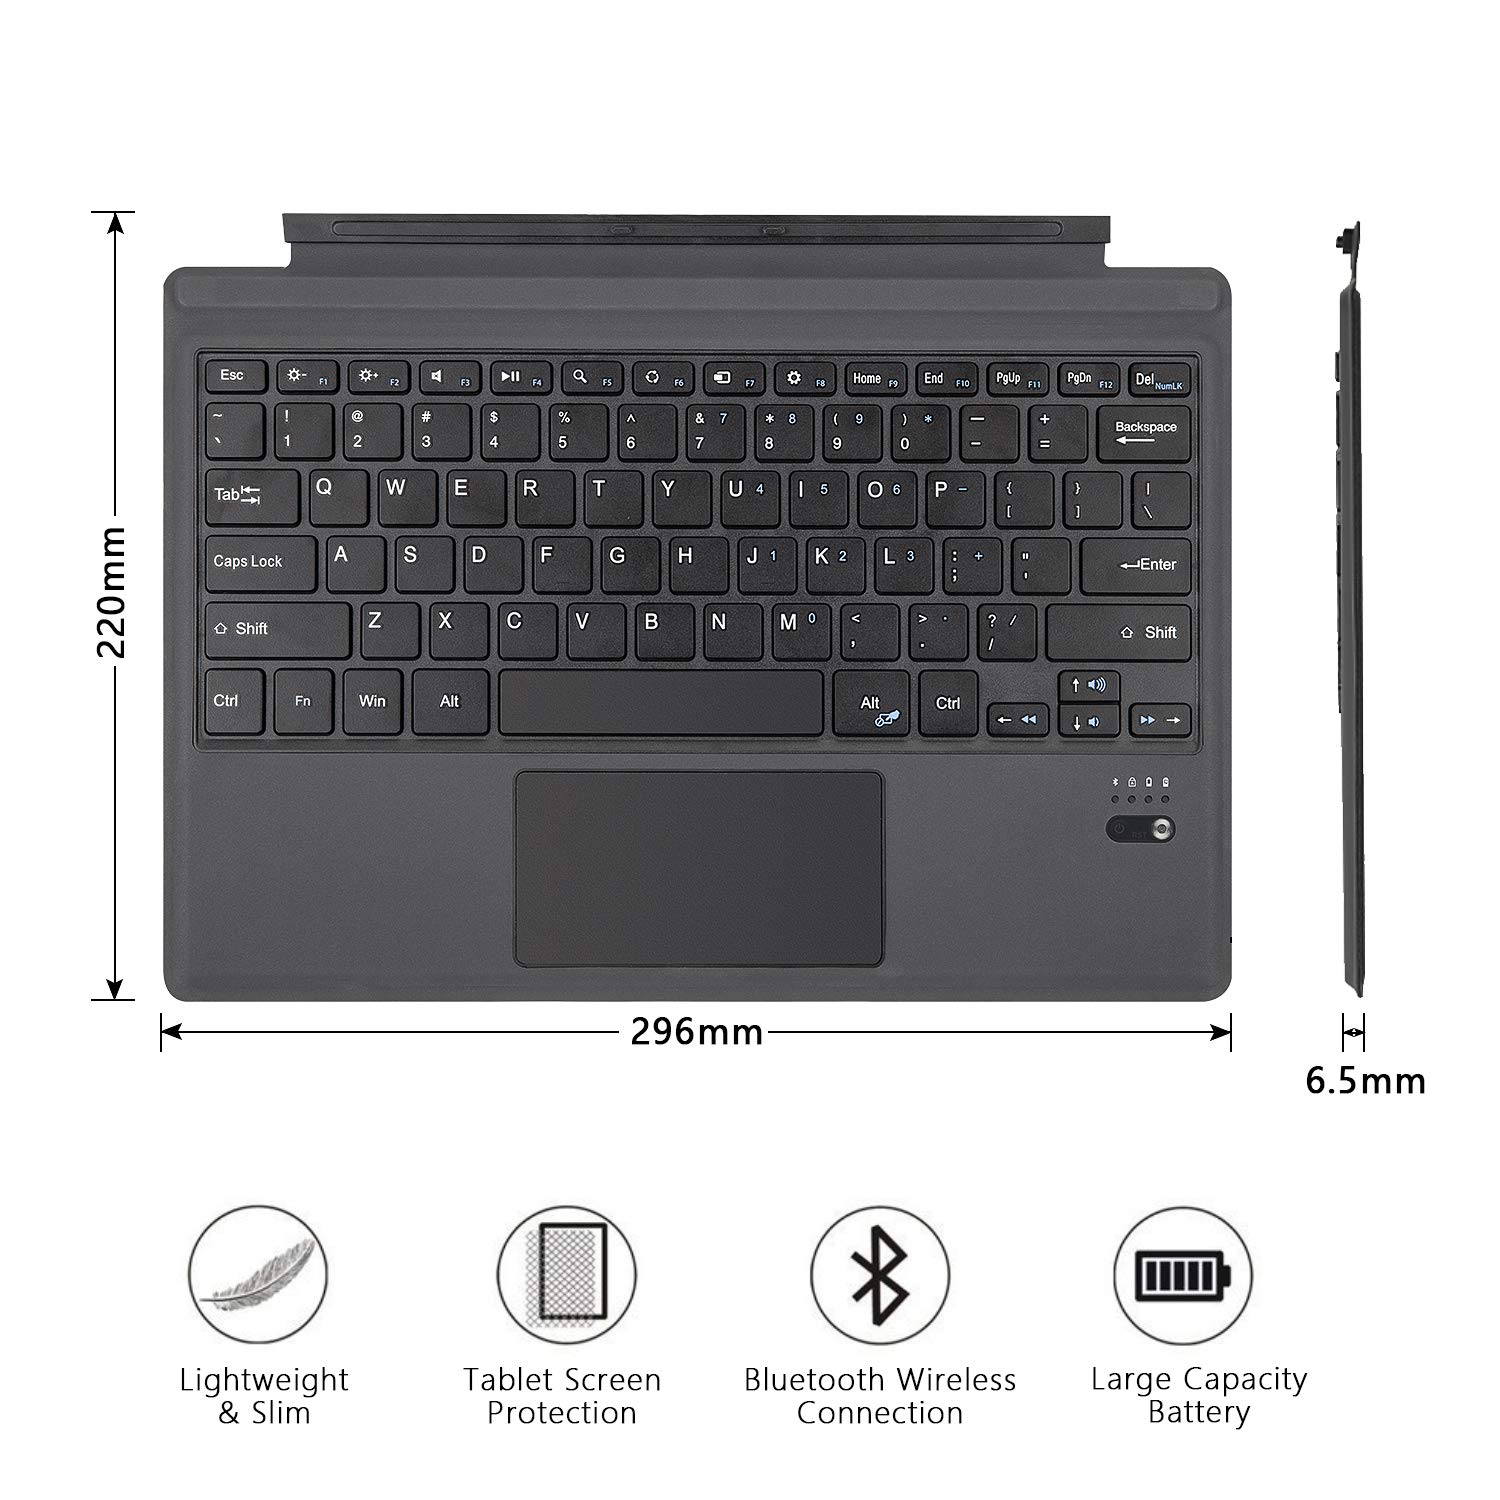 Tomsenn Surface Pro 6 / Surface Pro 5 (Pro 2017) / Pro 4 / Pro 3 Type Cover, Lightweight Slim Wireless Bluetooth Keyboard Two Button Trackpad Built-in Rechargeable Battery, Gray by TOMSENN (Image #5)